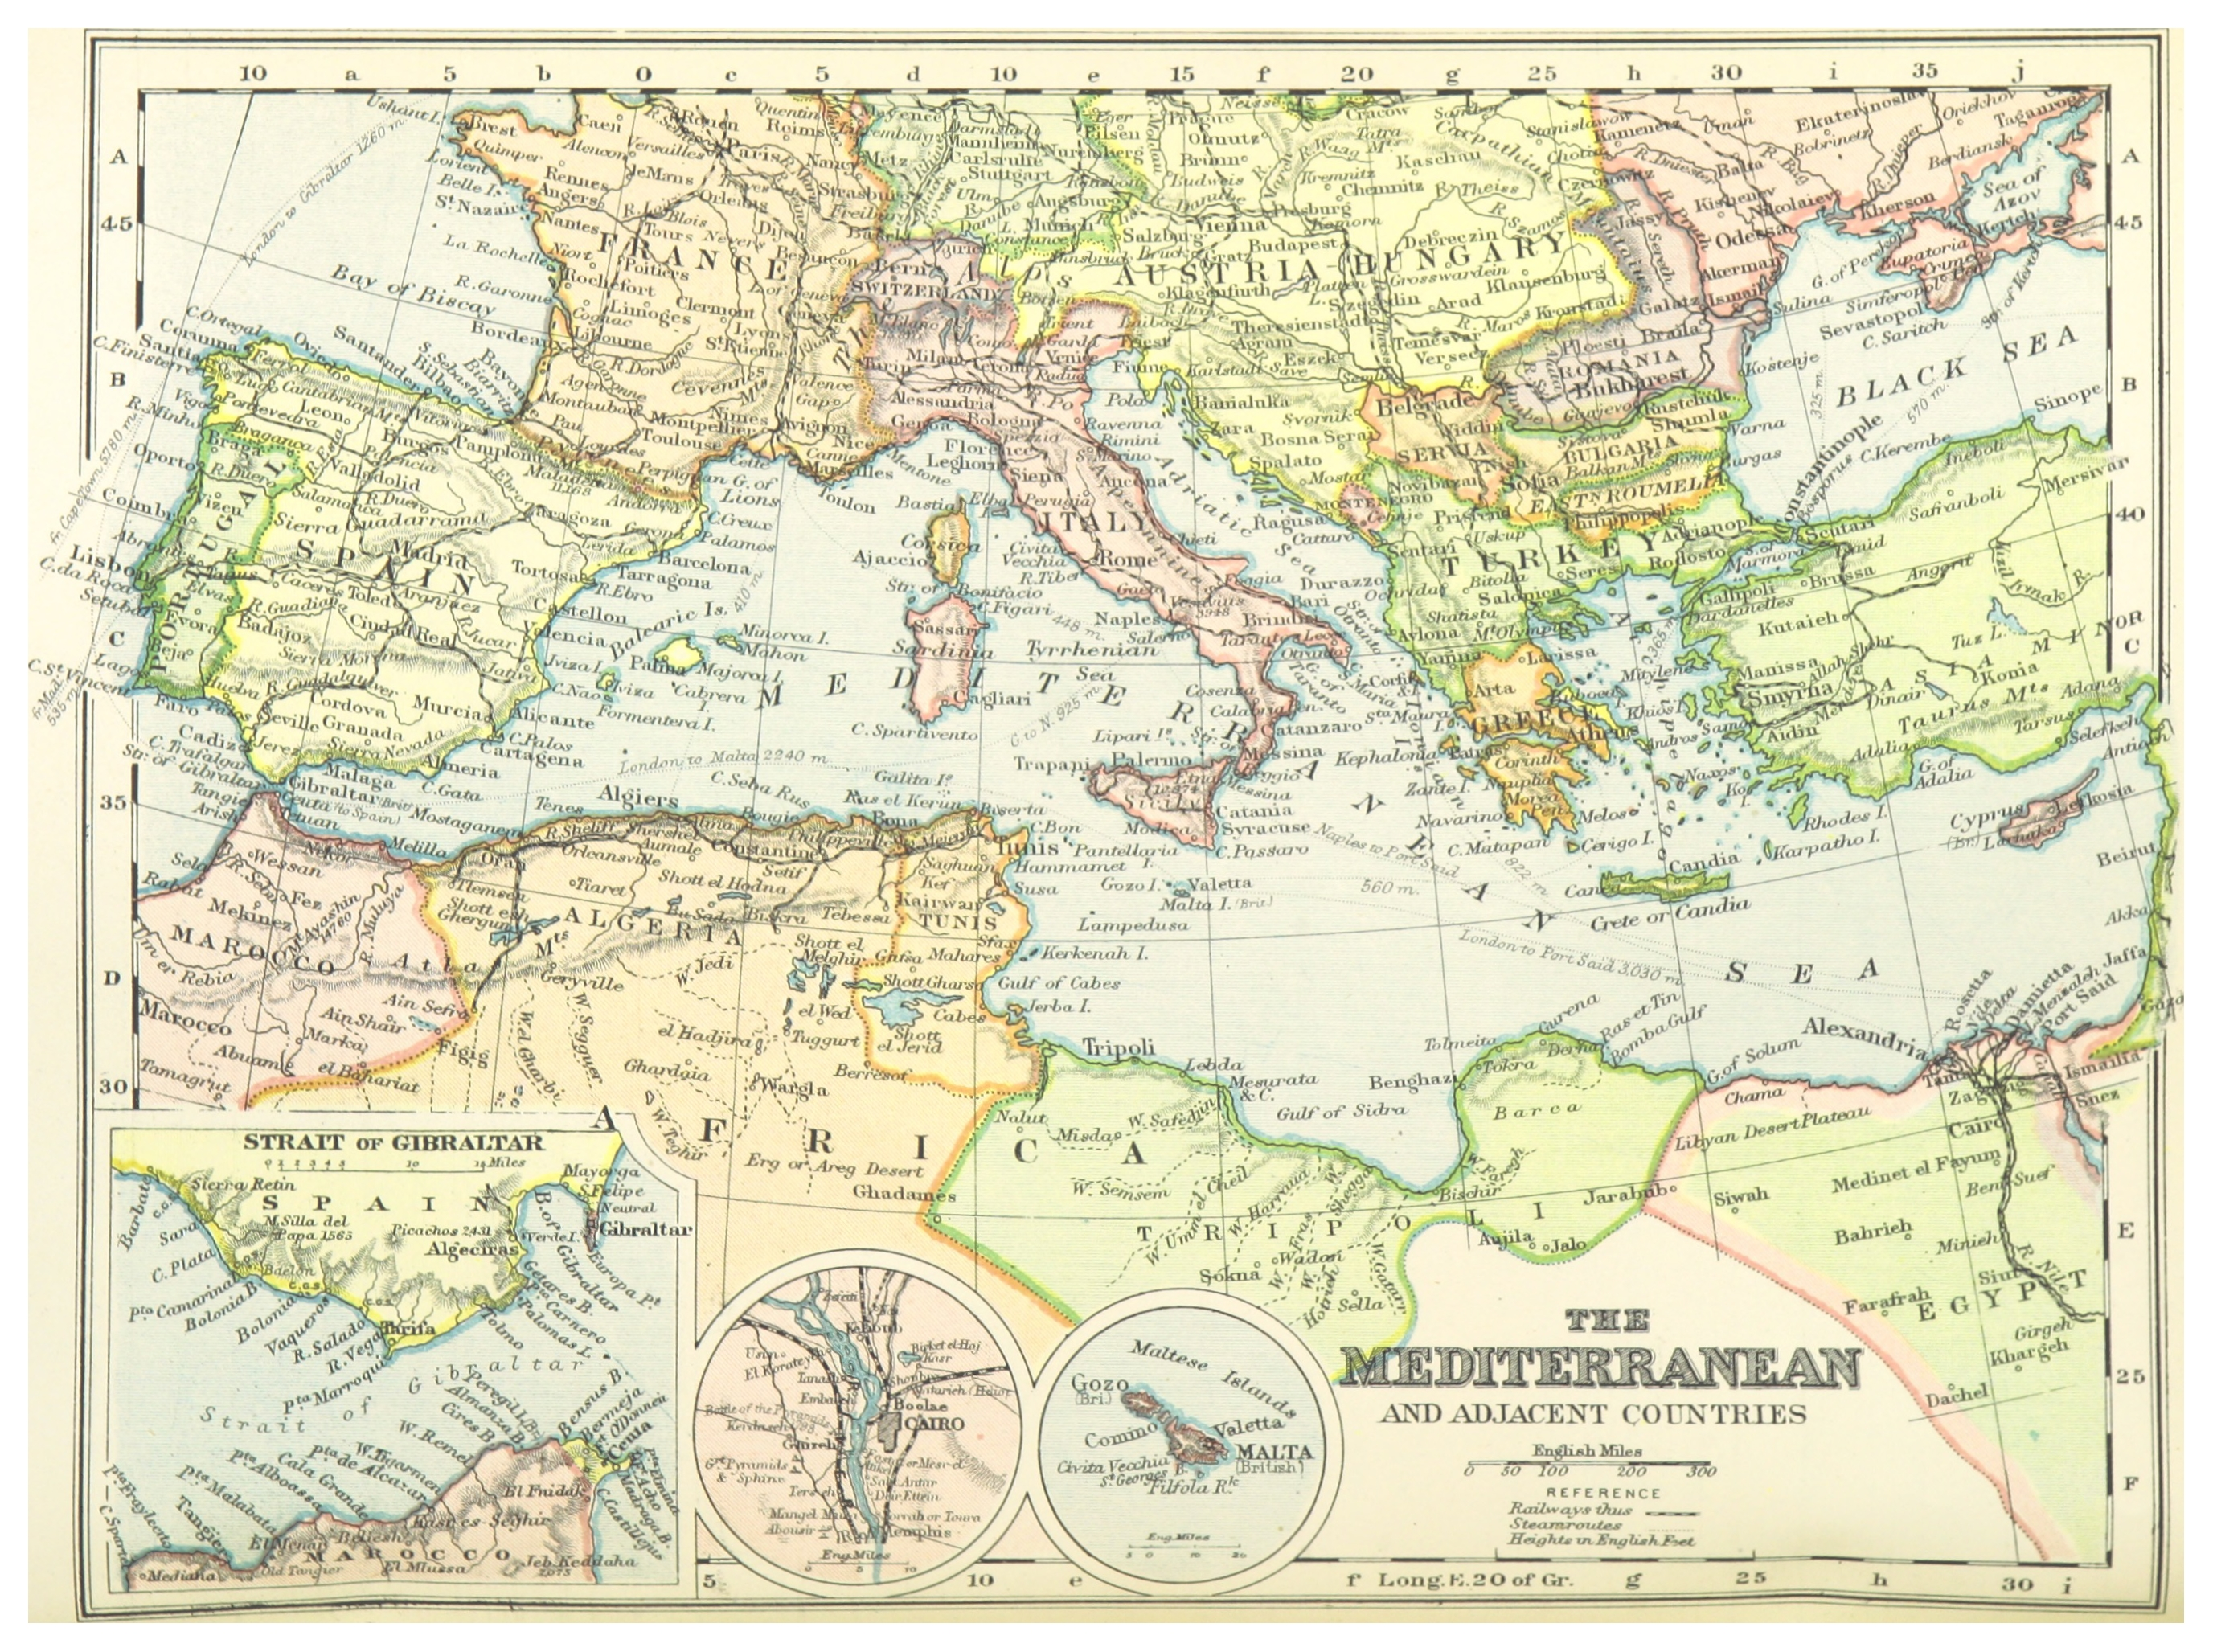 File:(1899) MAP OF THE MEDITERRANEAN COUNTRIES - comp. by Irvine.jpg ...